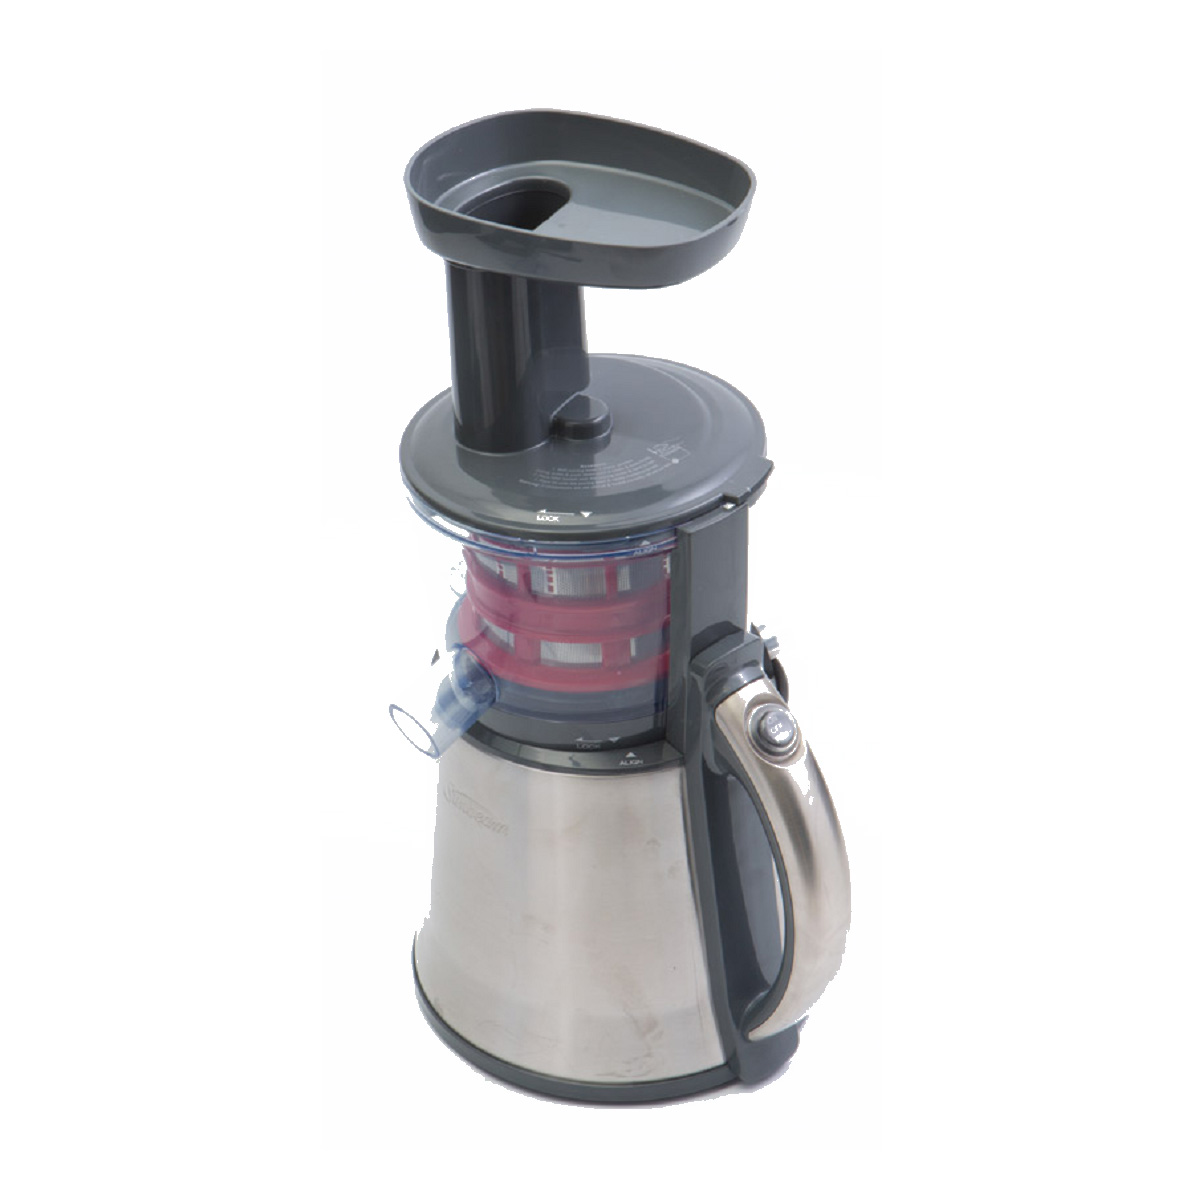 Sunbeam JE9000 Slow Juicer Home Clearance